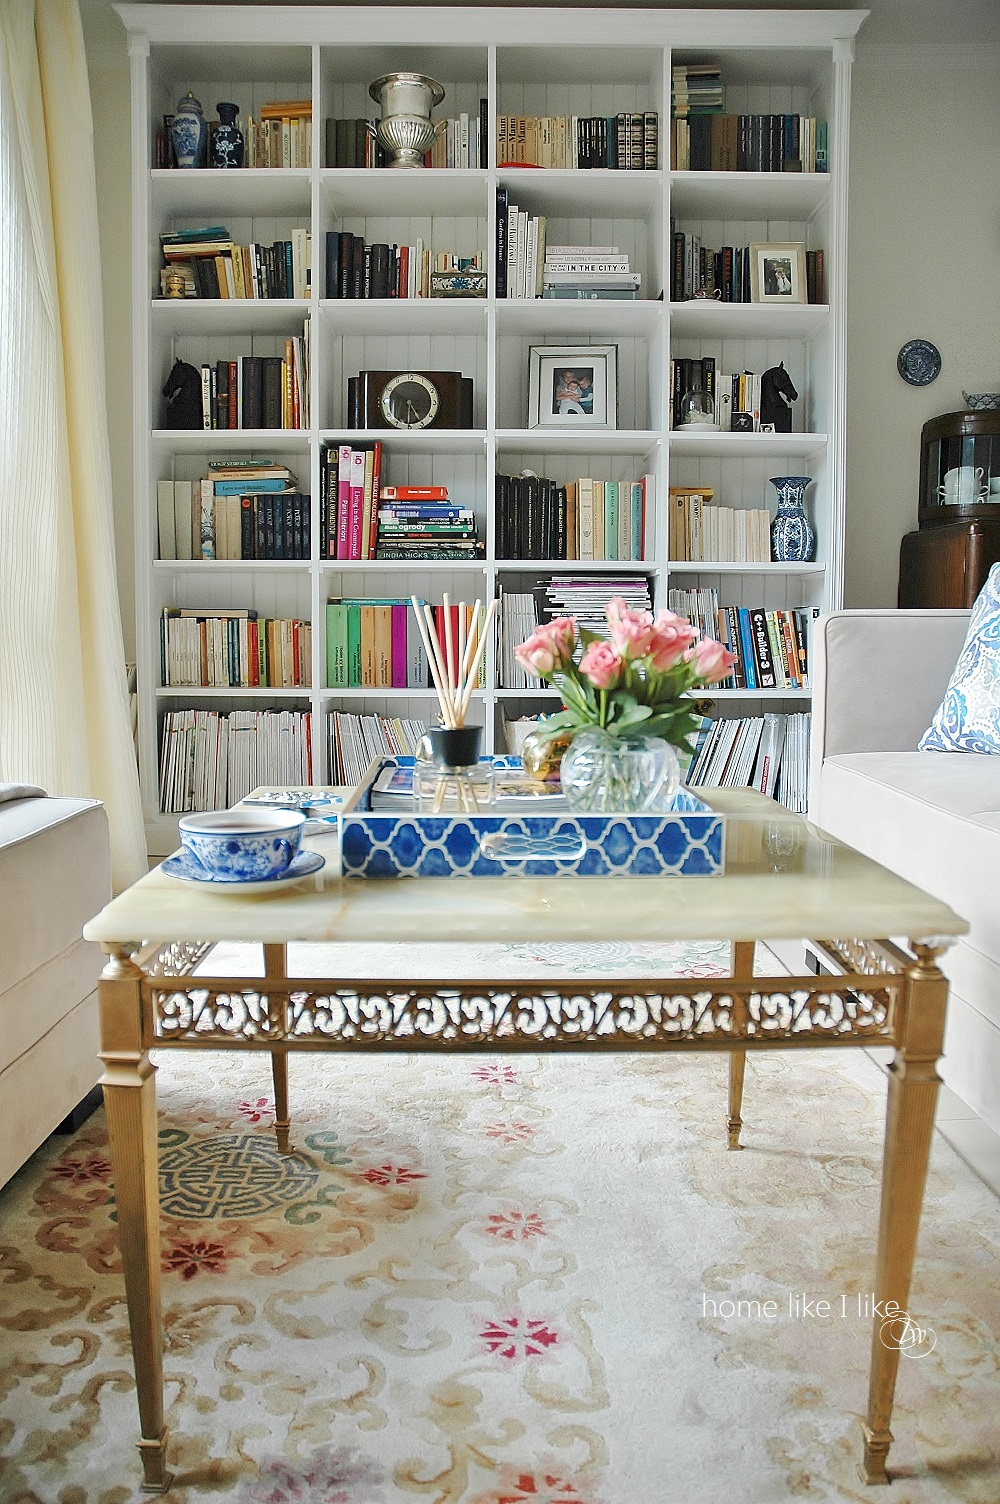 book shelf - homelikeilike.com